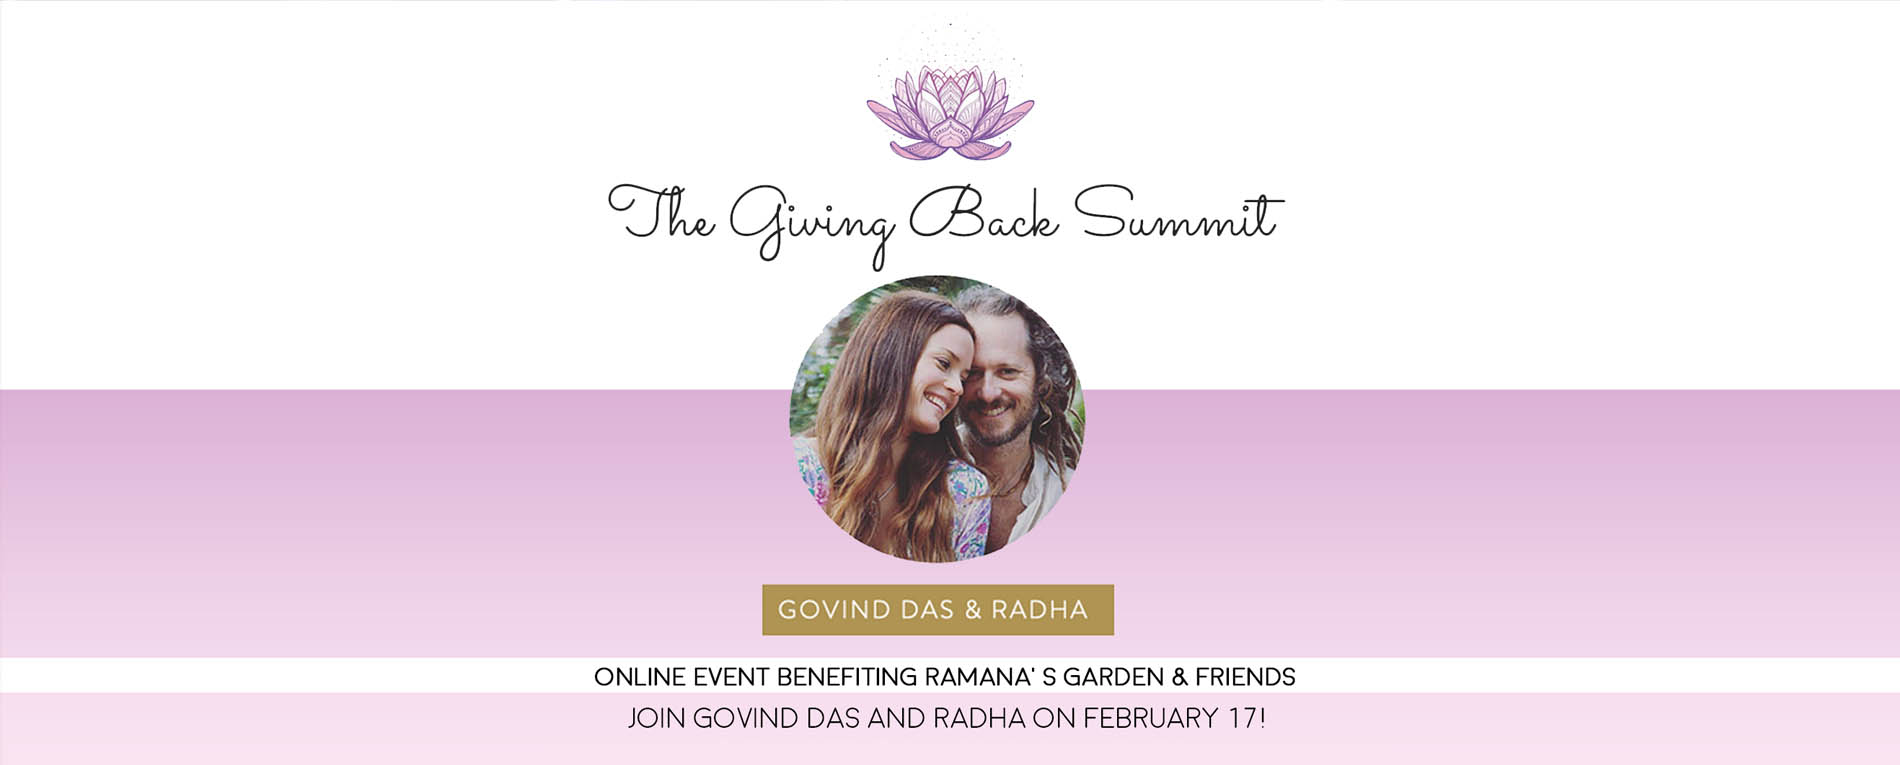 Giving Back Summit